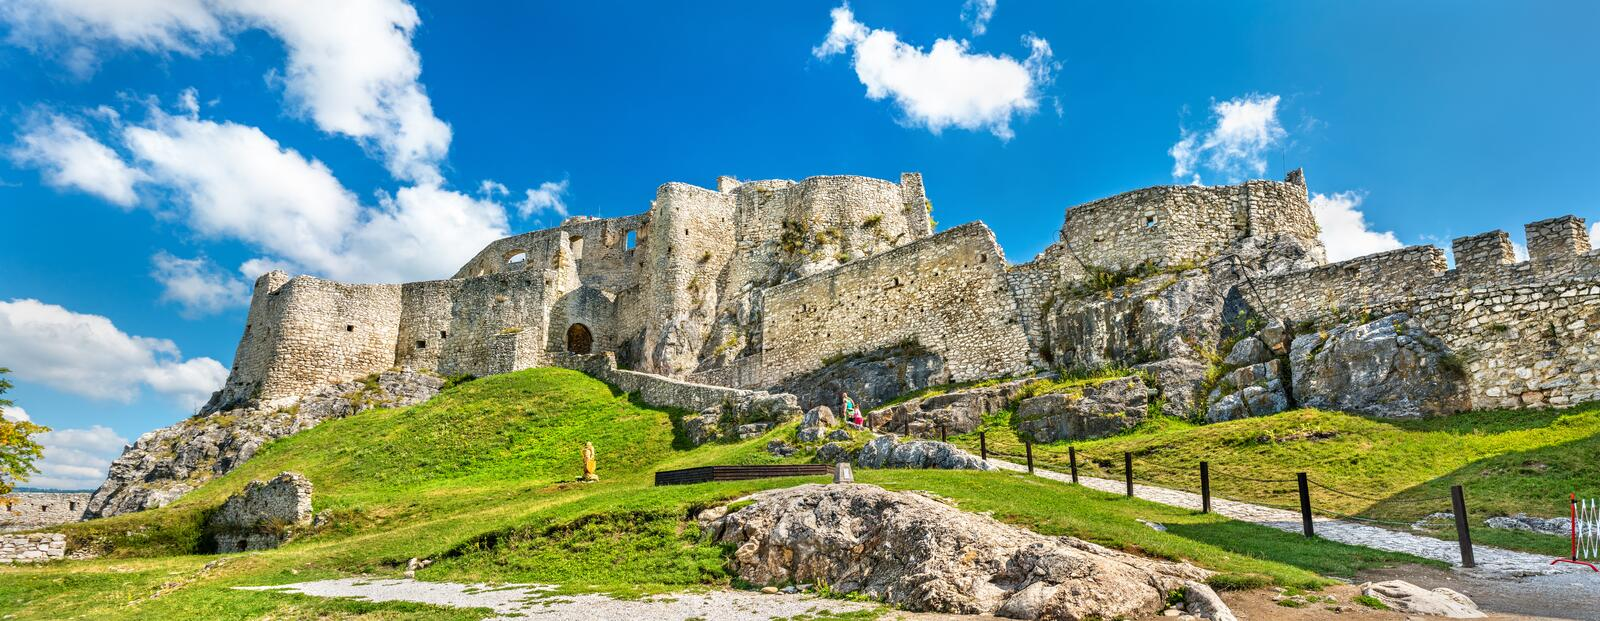 Spis Castle, a UNESCO world heritage site in Slovakia stock image